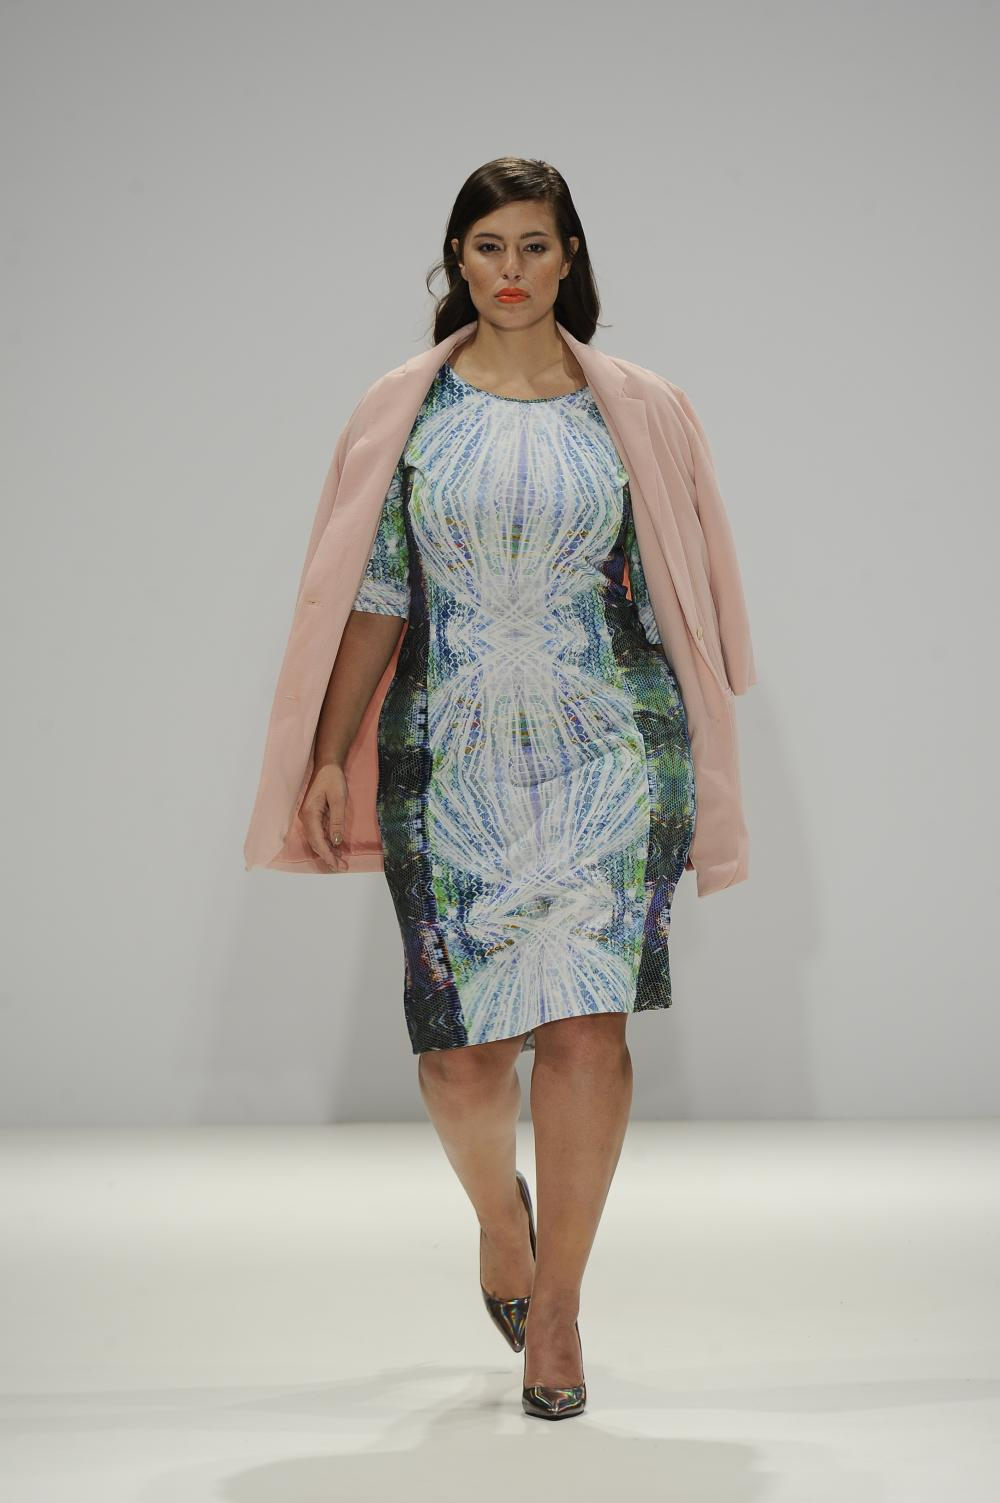 Plus Size Fashion Week UK Yvonne ShuYao